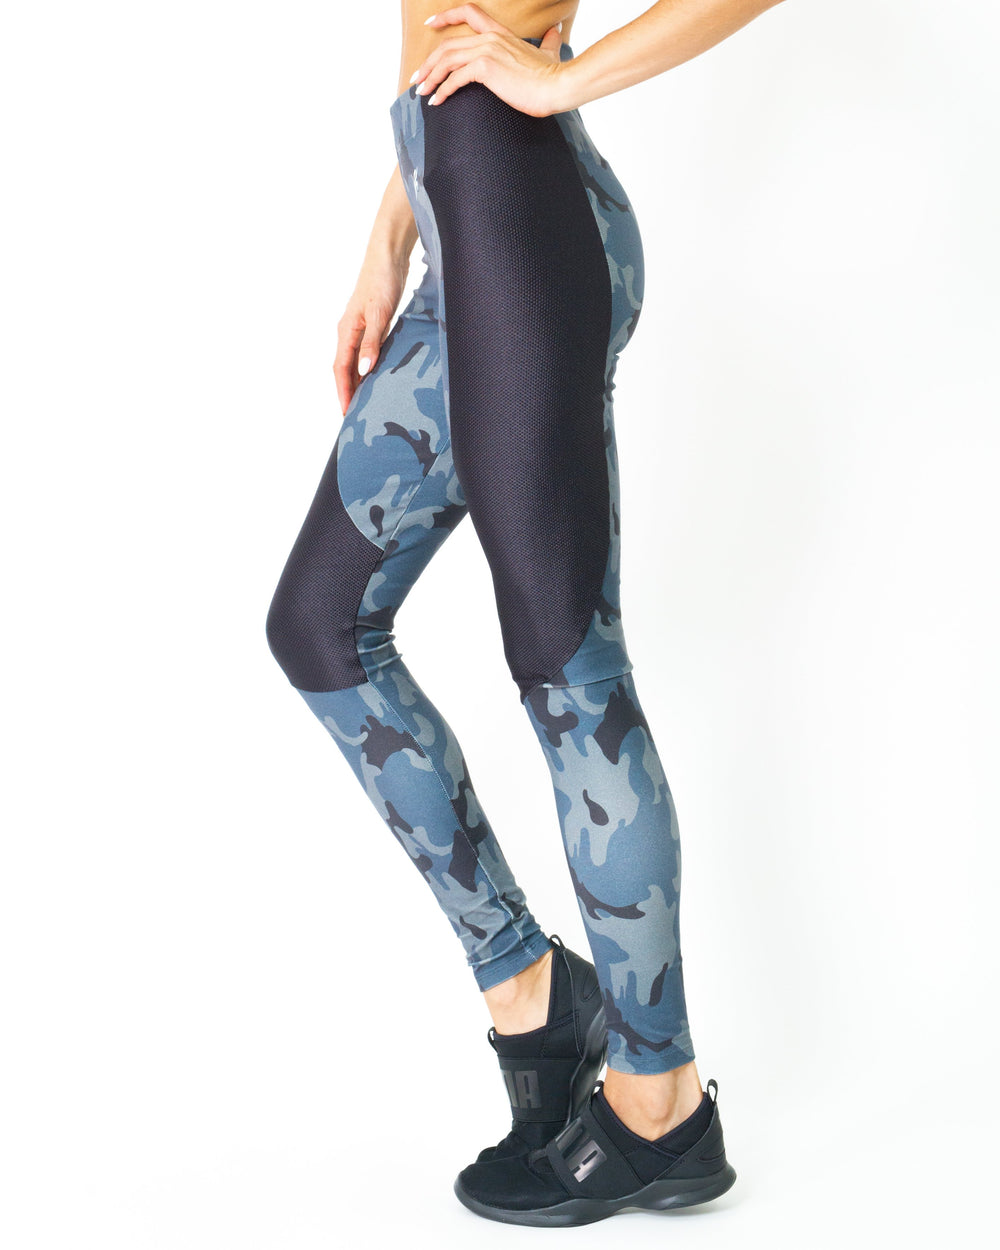 Veloso Supplex Moisture-Resistant Fashion Leggings